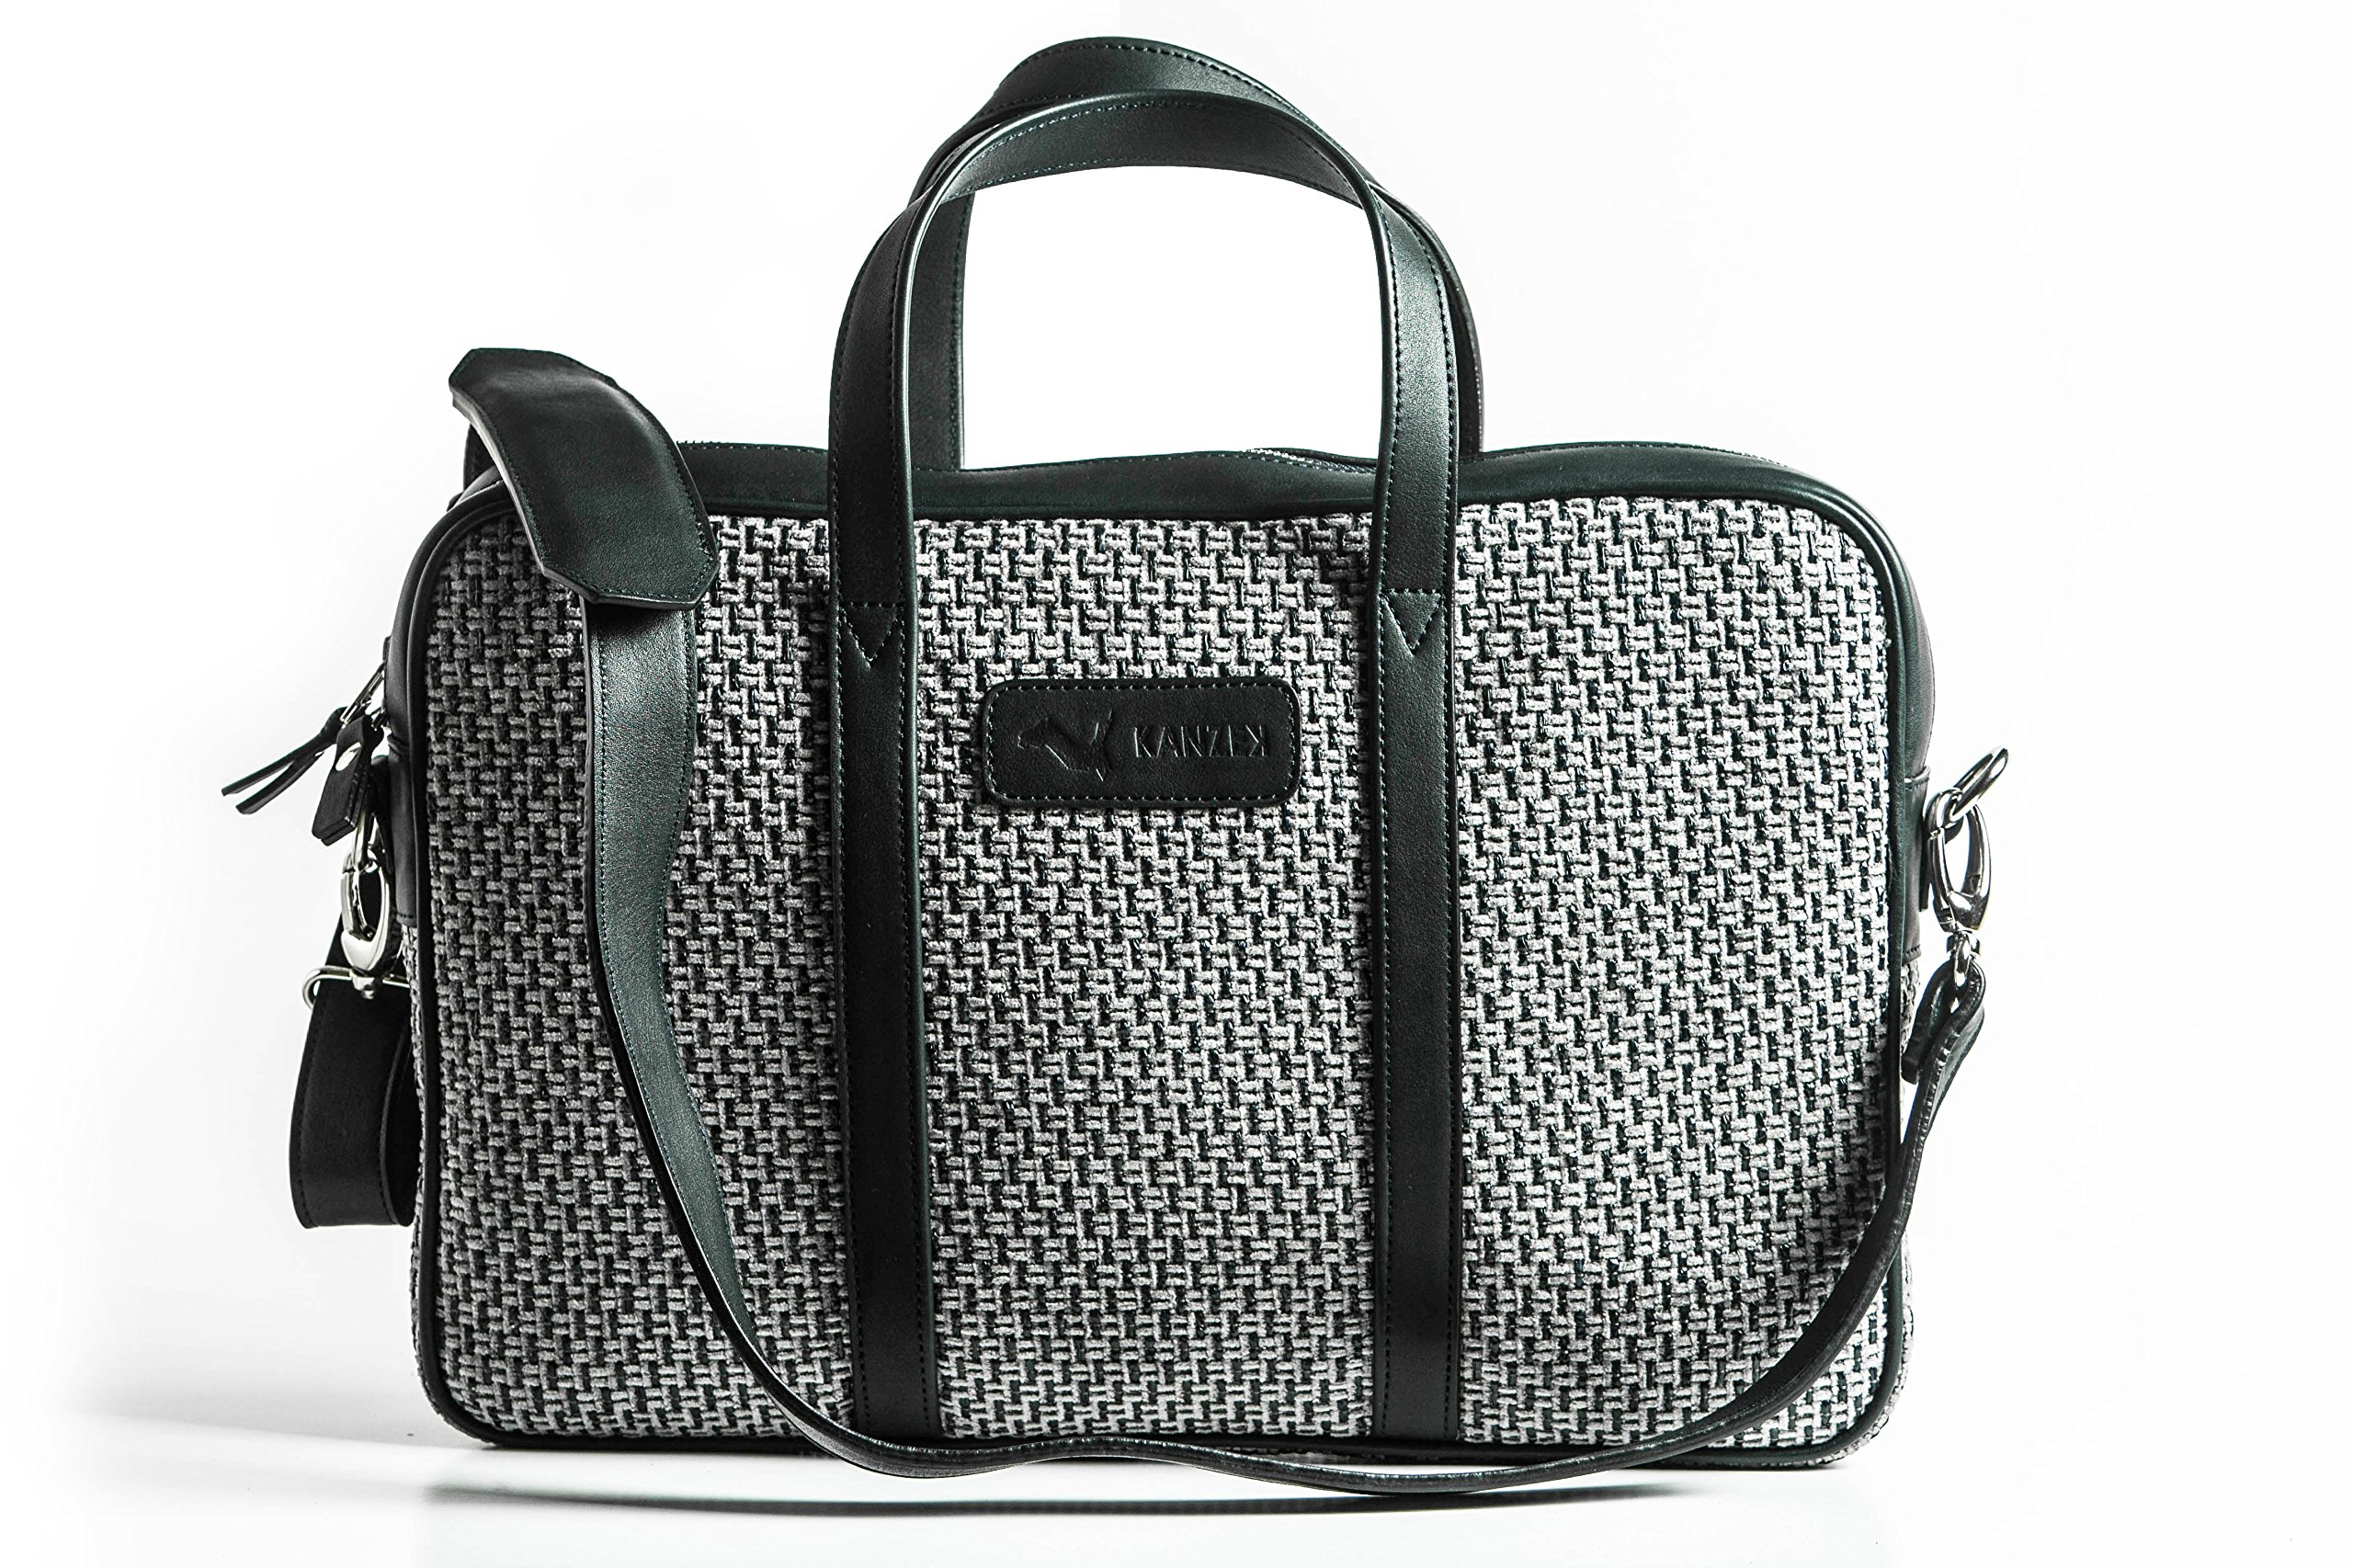 KANZEK Blue and Grey Leather and Canvas Laptop Messenger Briefcase/Shoulder Bag, 15.6'' Computers, Light and Professional. Premium Materials and Design, Luxury Metal Zippers - Men's and Women's